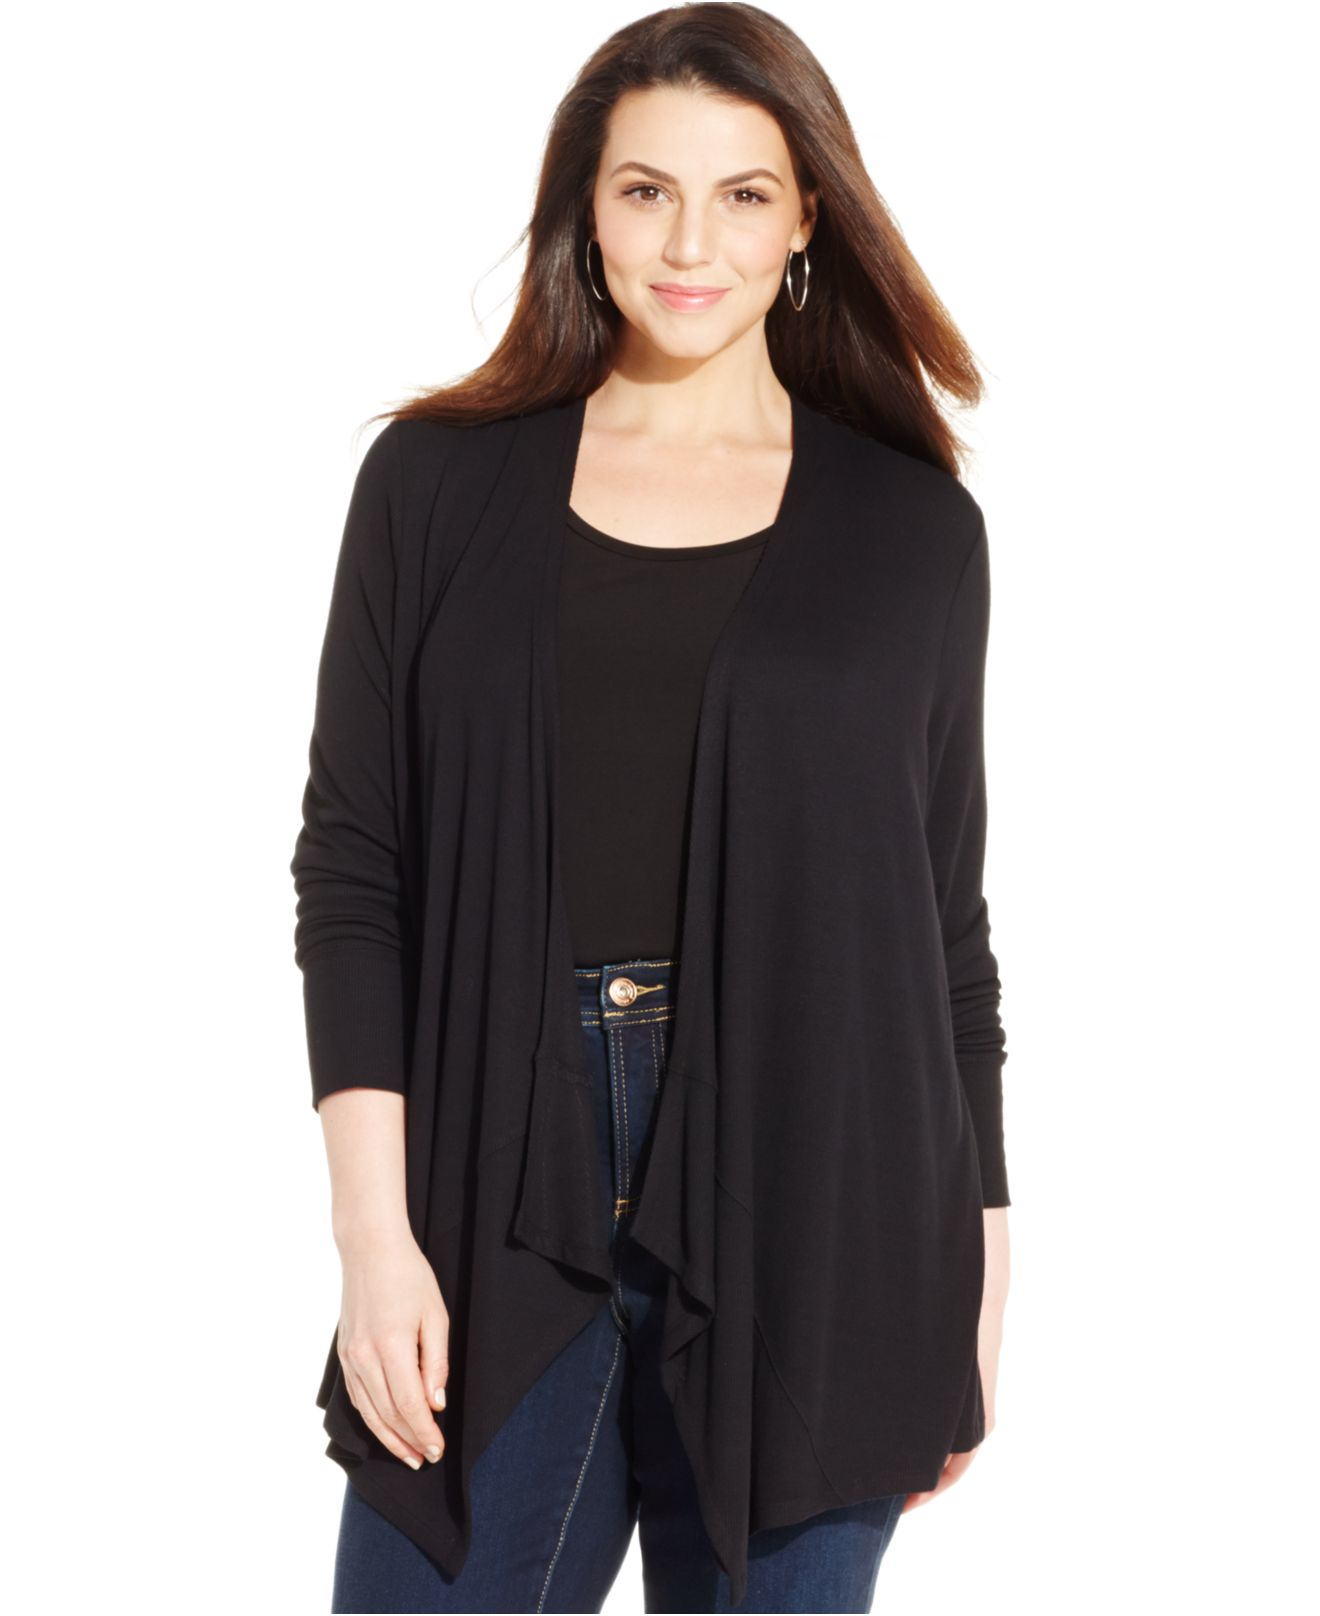 Inc international concepts Plus Size Draped Open-front Cardigan in ...